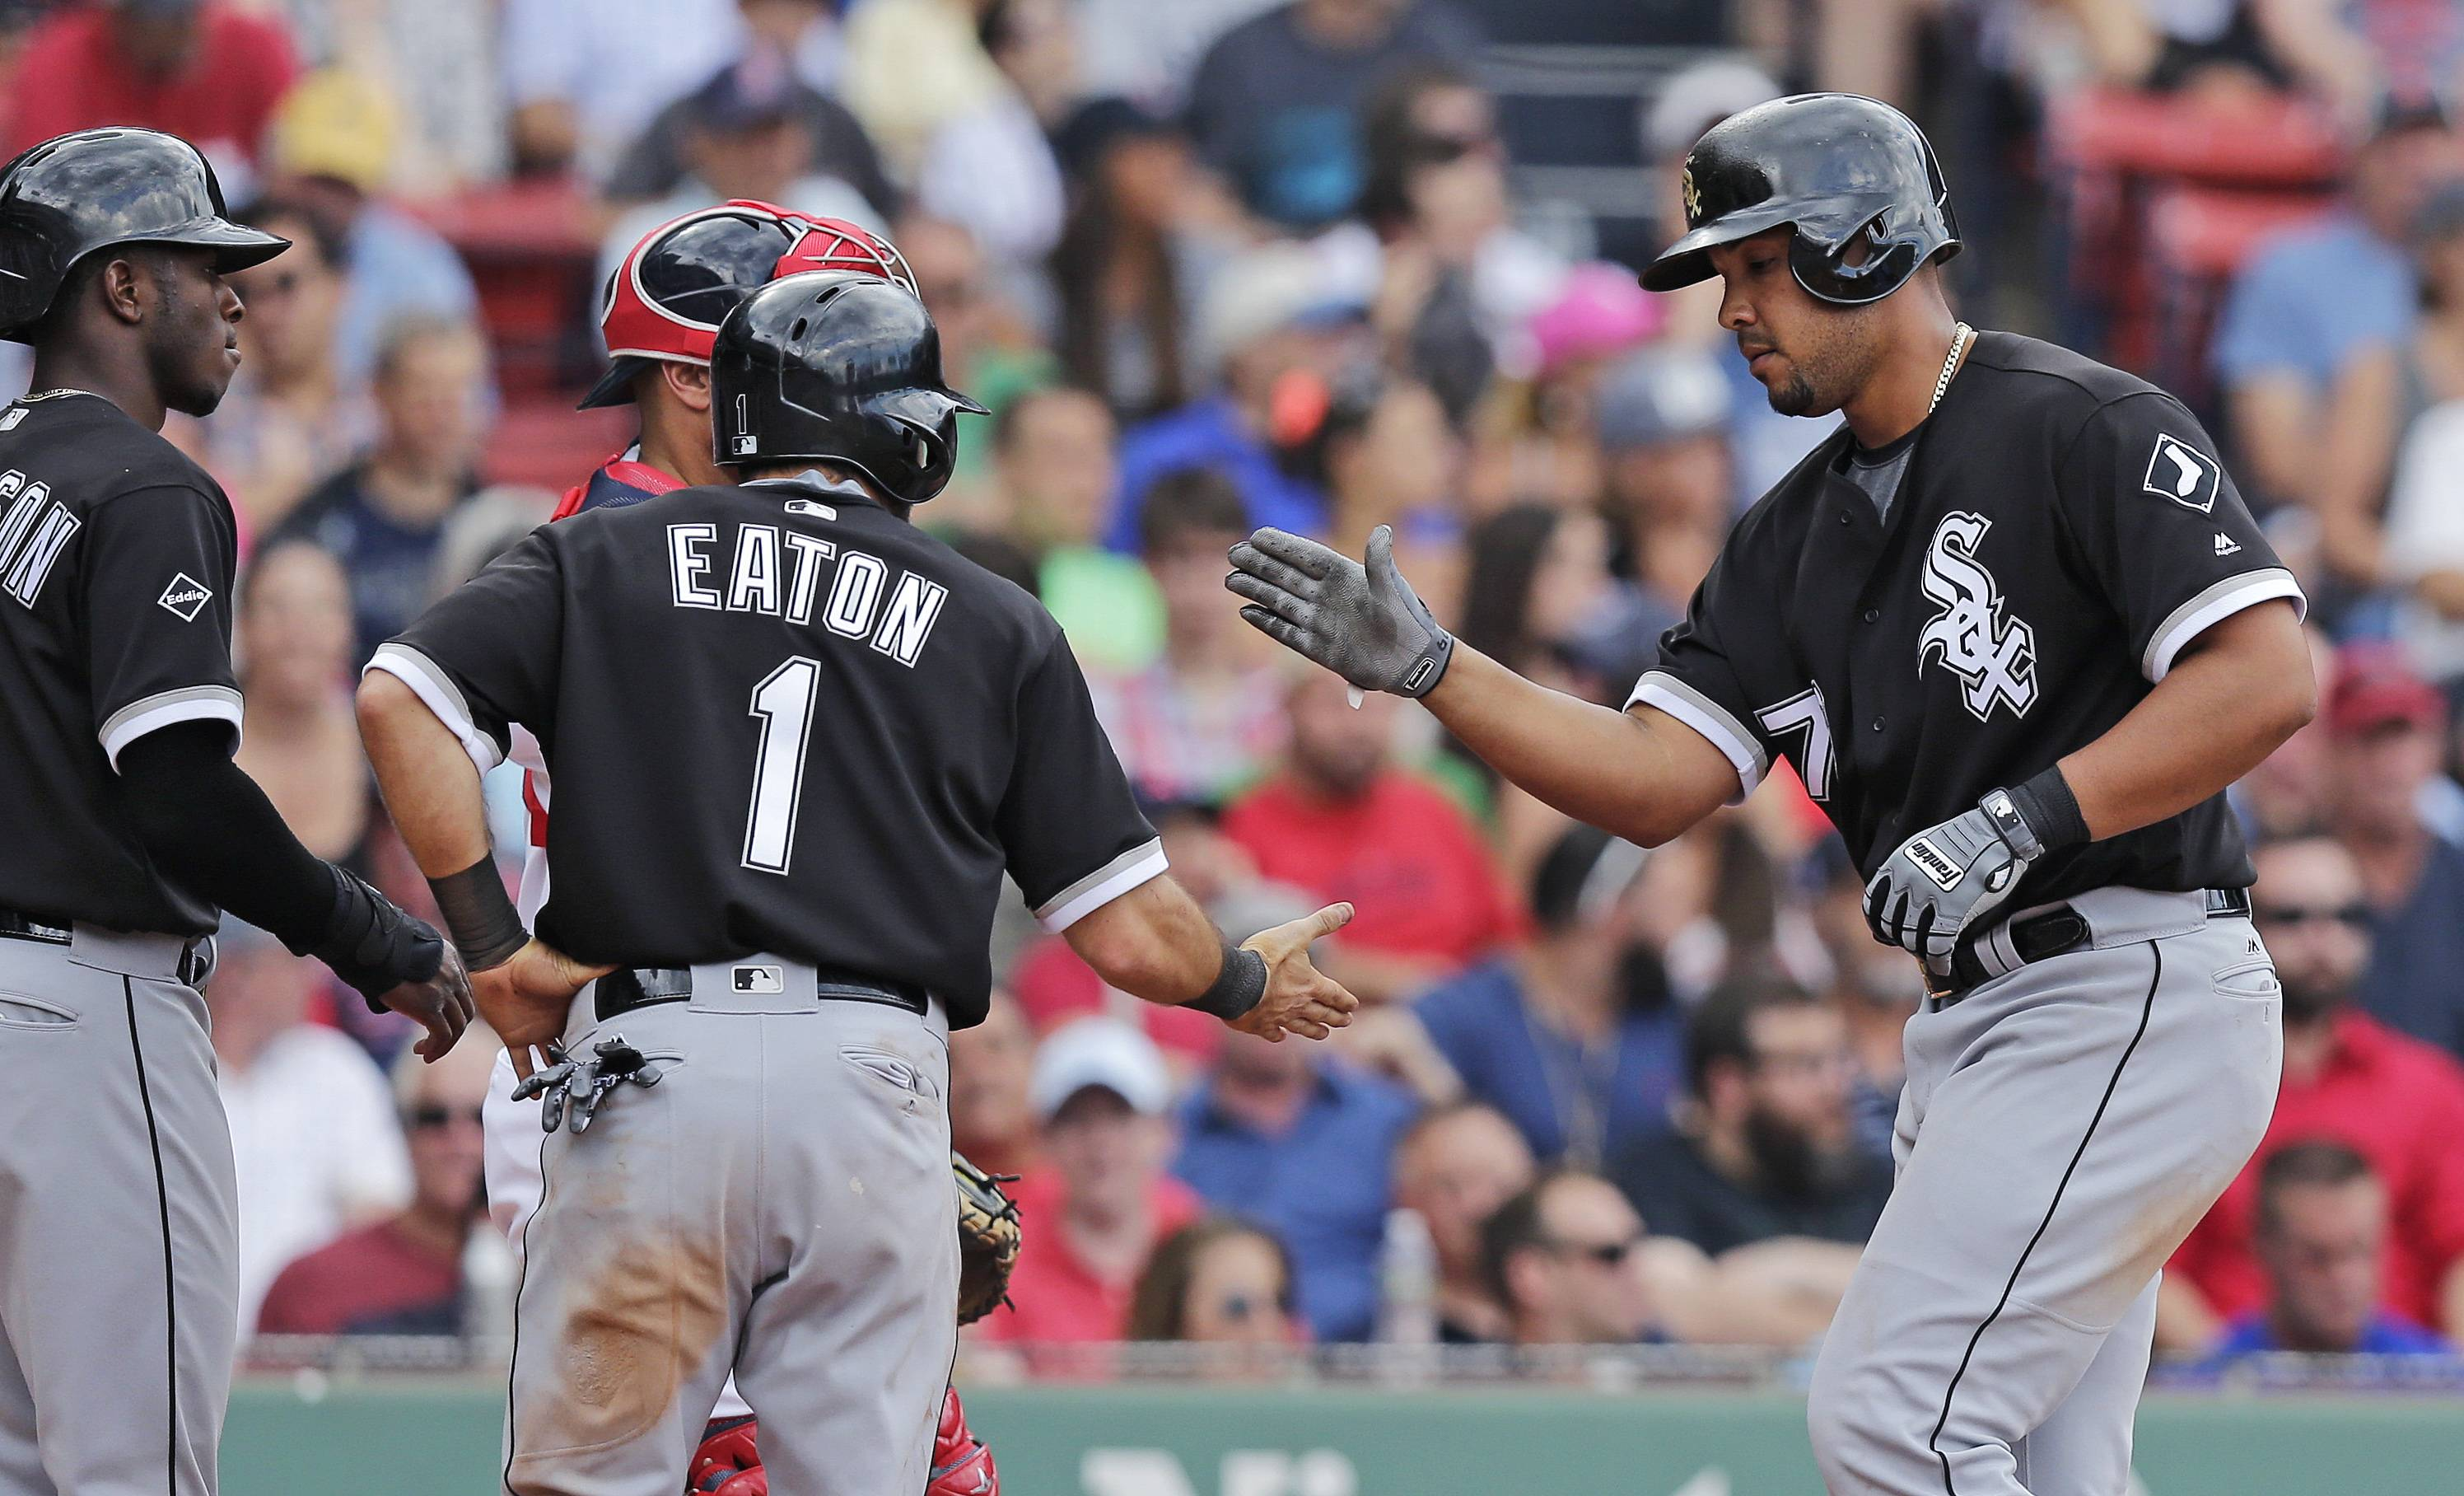 White Sox hoping Shields builds off much better start against Red Sox